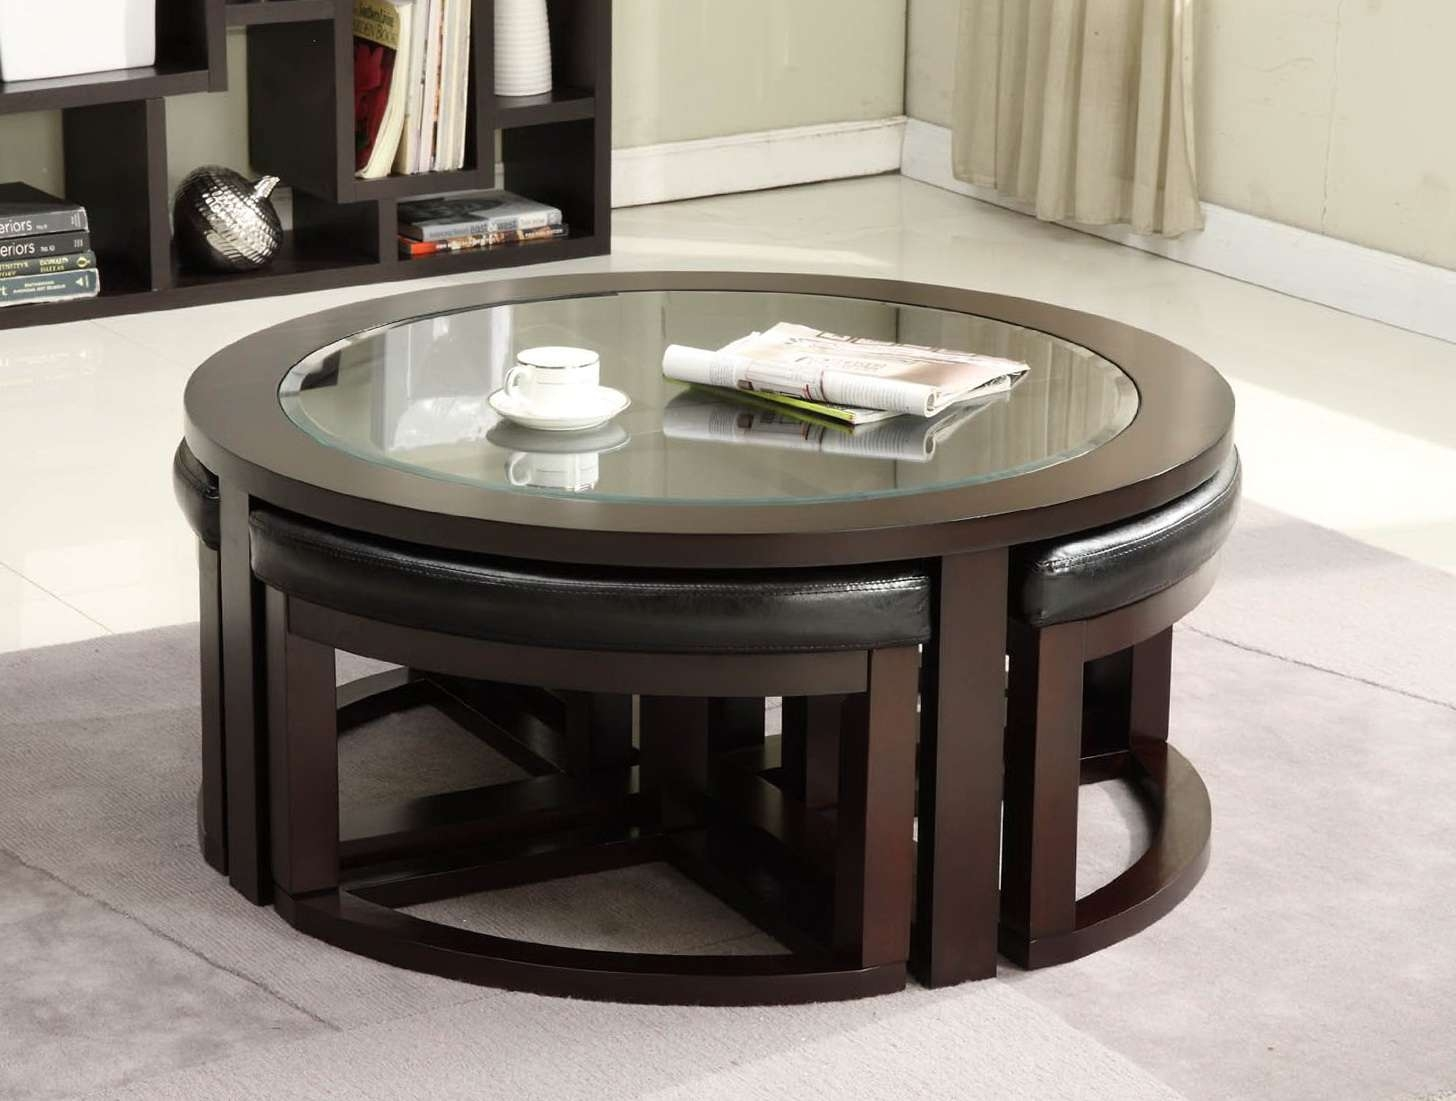 Preferred Round Coffee Table Storages Throughout Coffee Tables : Splendid Round Coffee Table Ottomans Underneath (View 11 of 20)